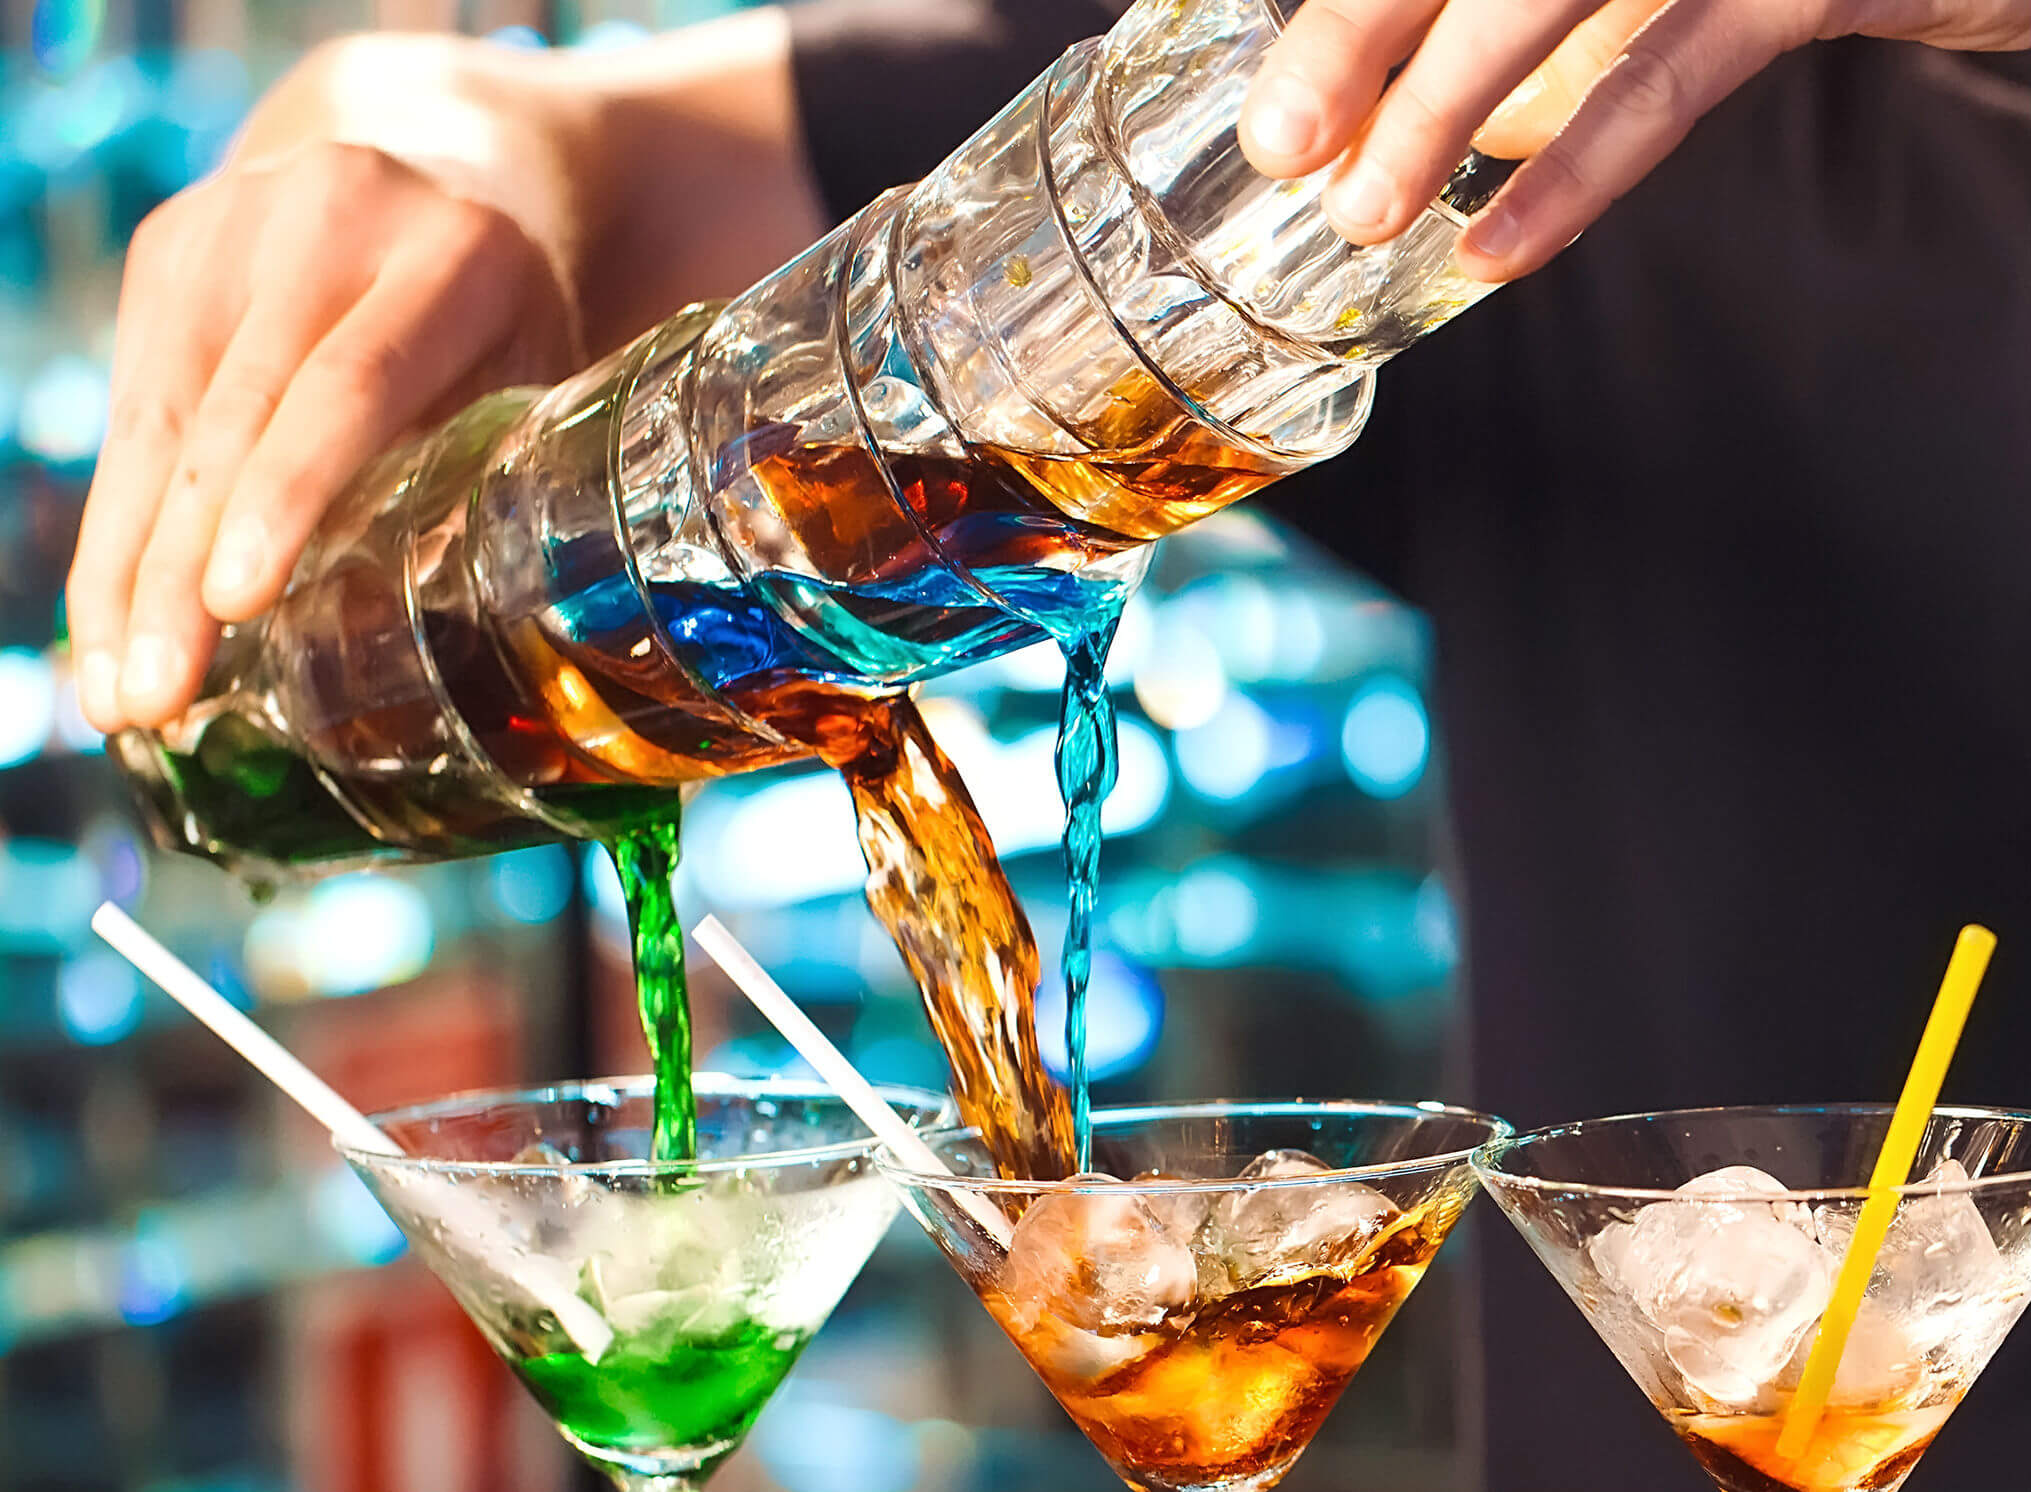 Cocktail-Making-Re-Size.jpg